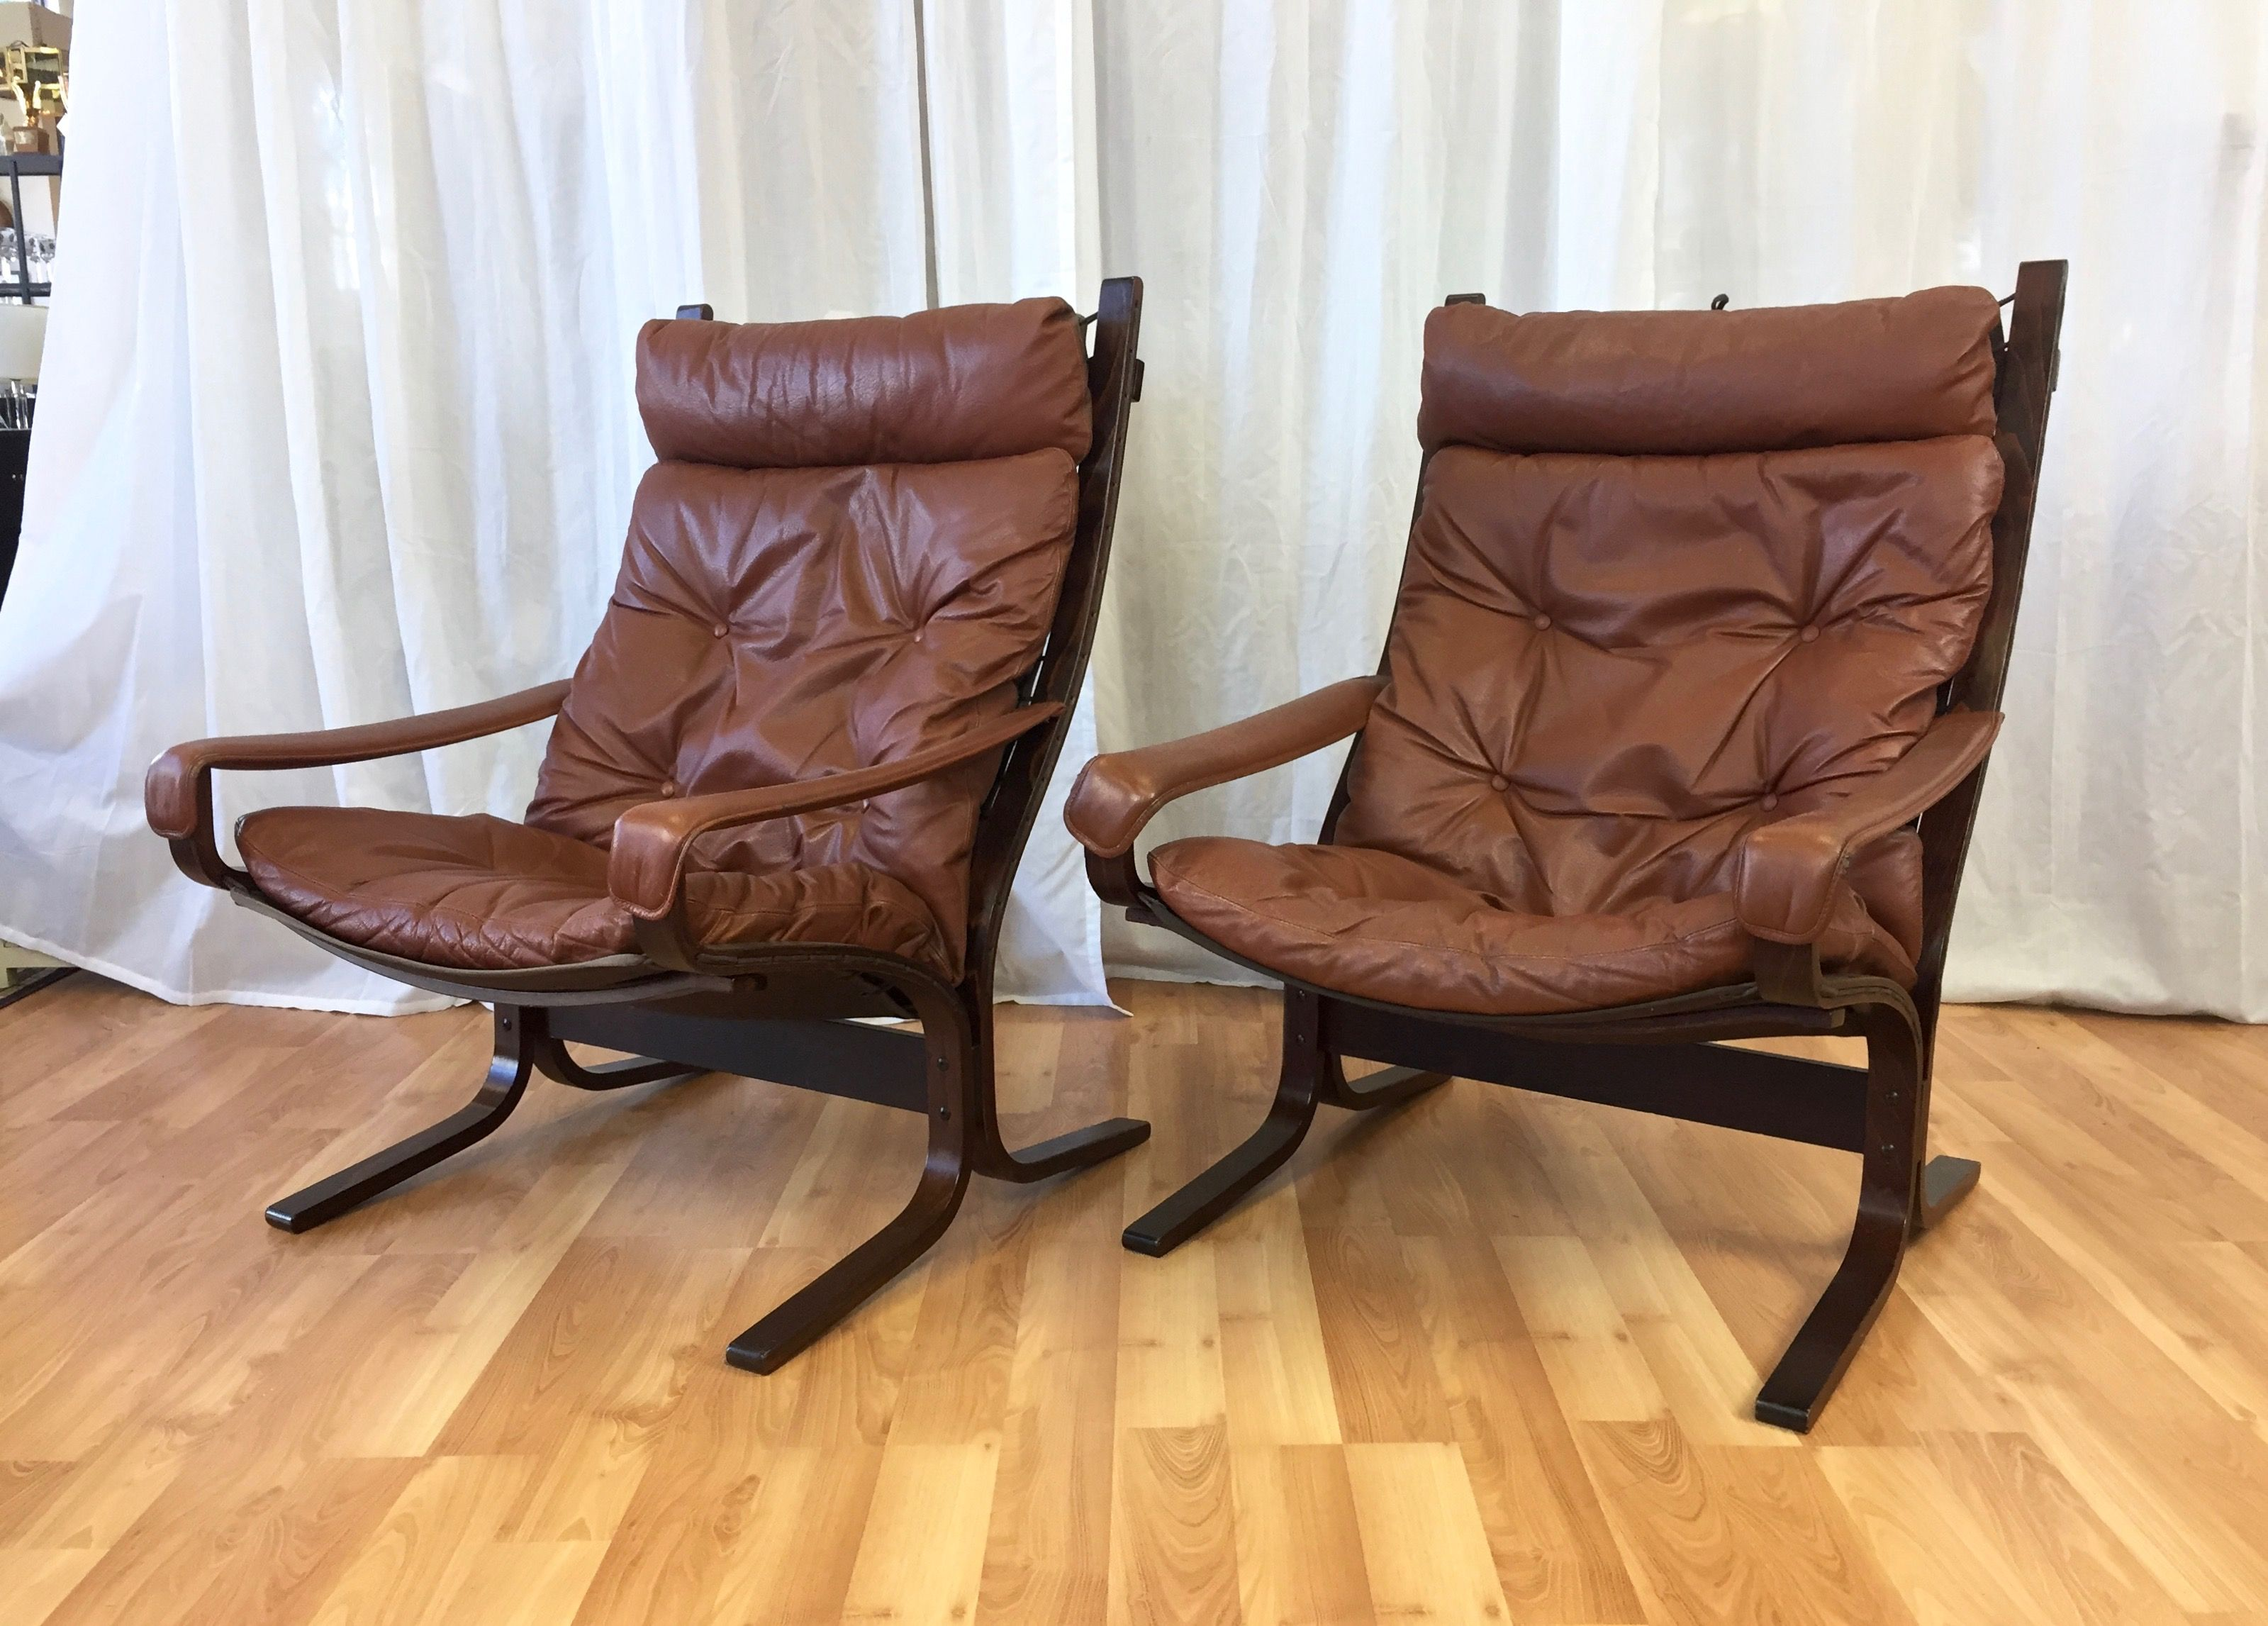 Siesta Sessel Siesta Lounge Chairs By Ingmar Relling For Westnofa Sold